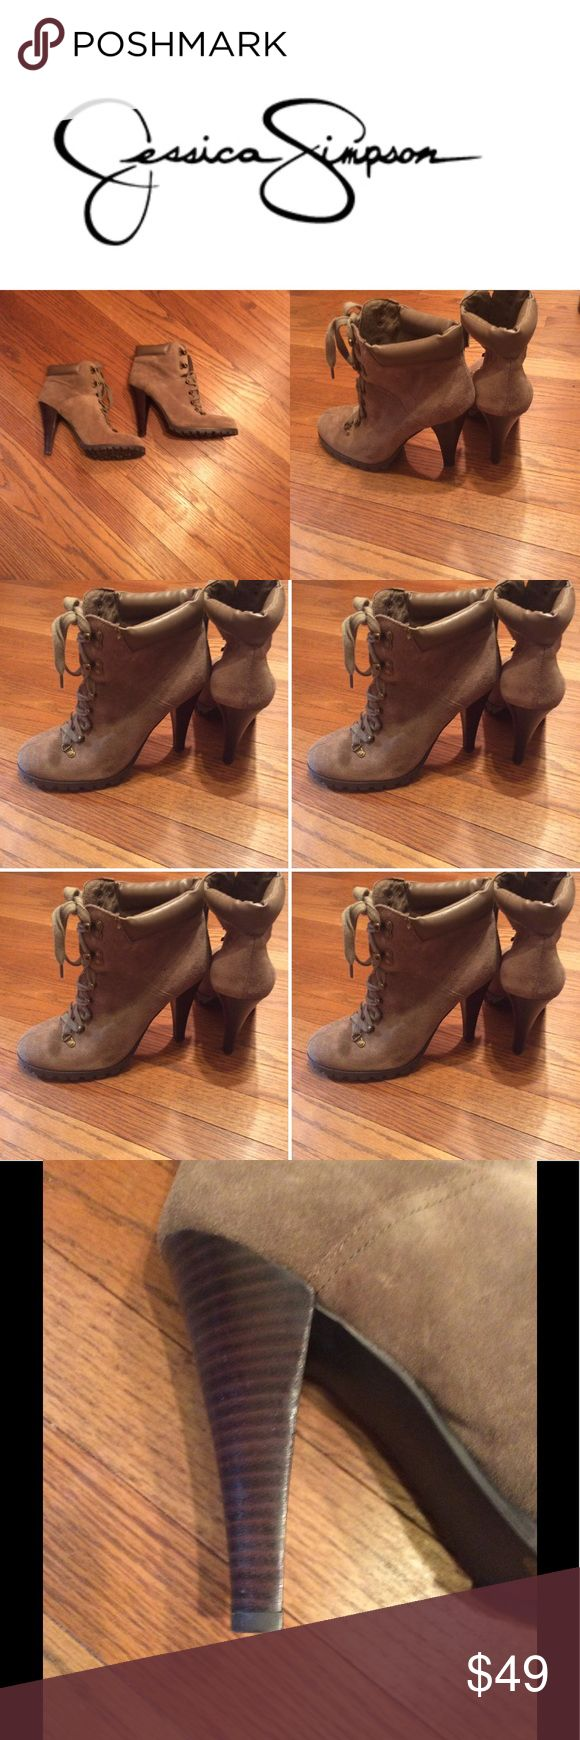 Jessica Simpson JP Baxter Boot Sheds and leather tie up heeled boot. So chic and cute. Style it with skinny jeans or go with leather pants. Throw on a A-line skirt and really mix things up. These are in a beautiful taupe neutral color so style favorites are endless. Gently loved in like new condition ! Sturdy shoe with great tread to make walking a breeze. Size 9.5 B Jessica Simpson Shoes Heeled Boots